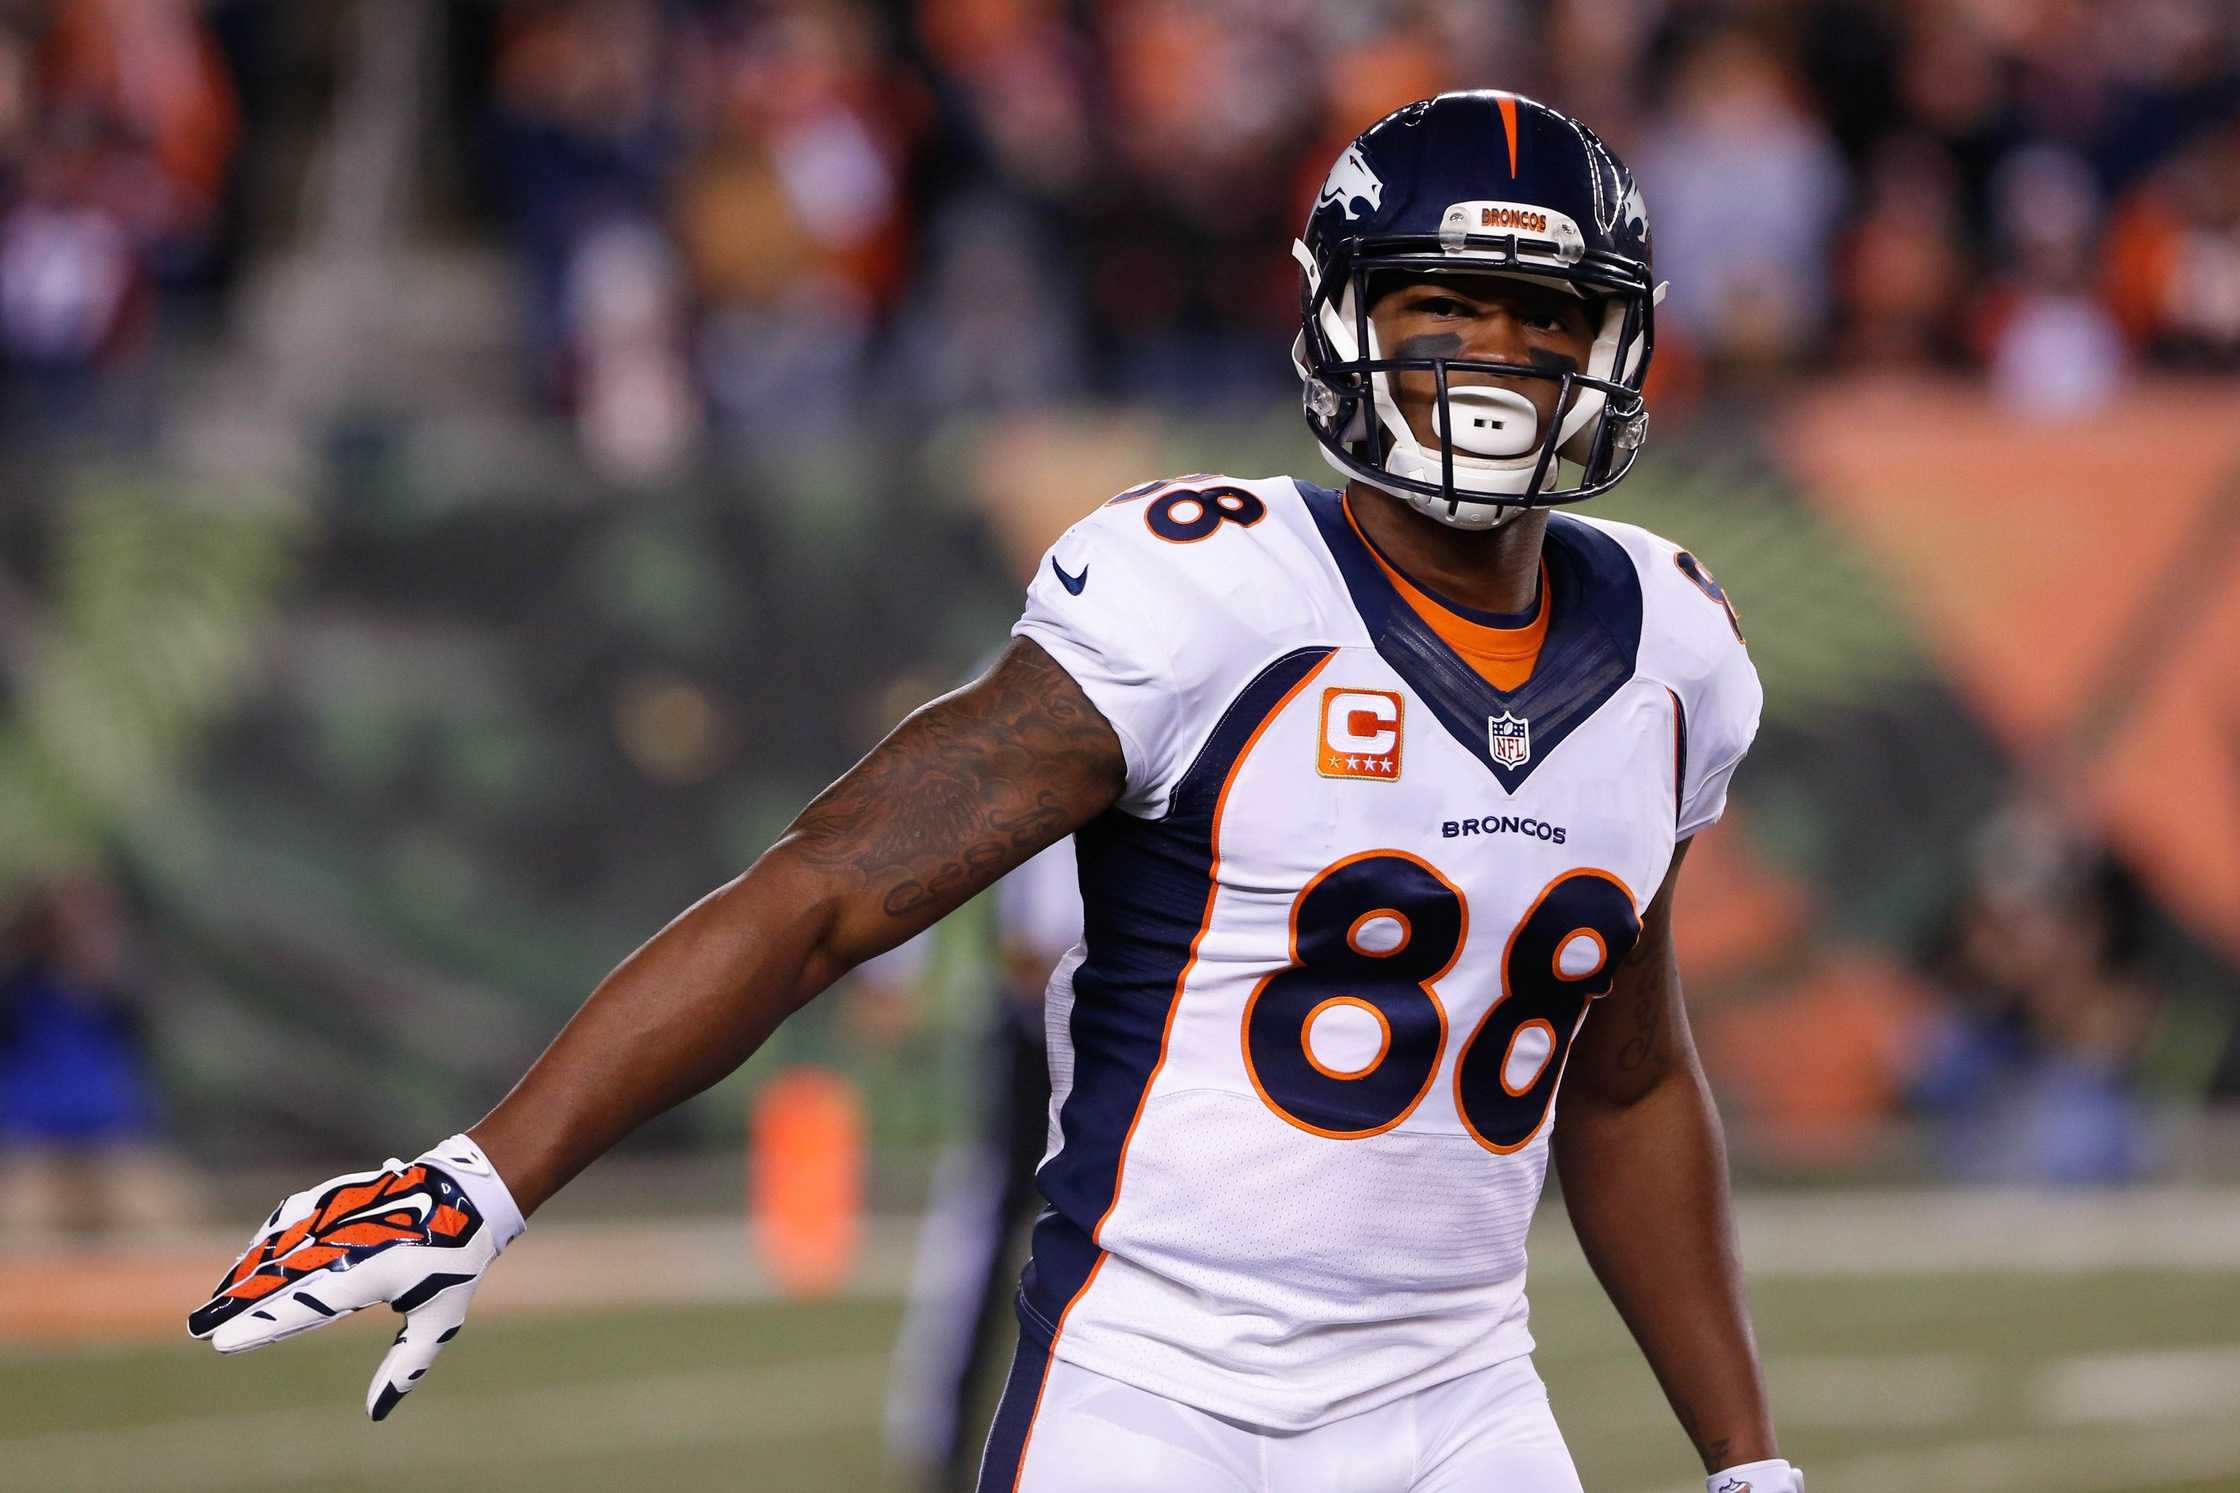 Projecting the Value of Demaryius Thomas